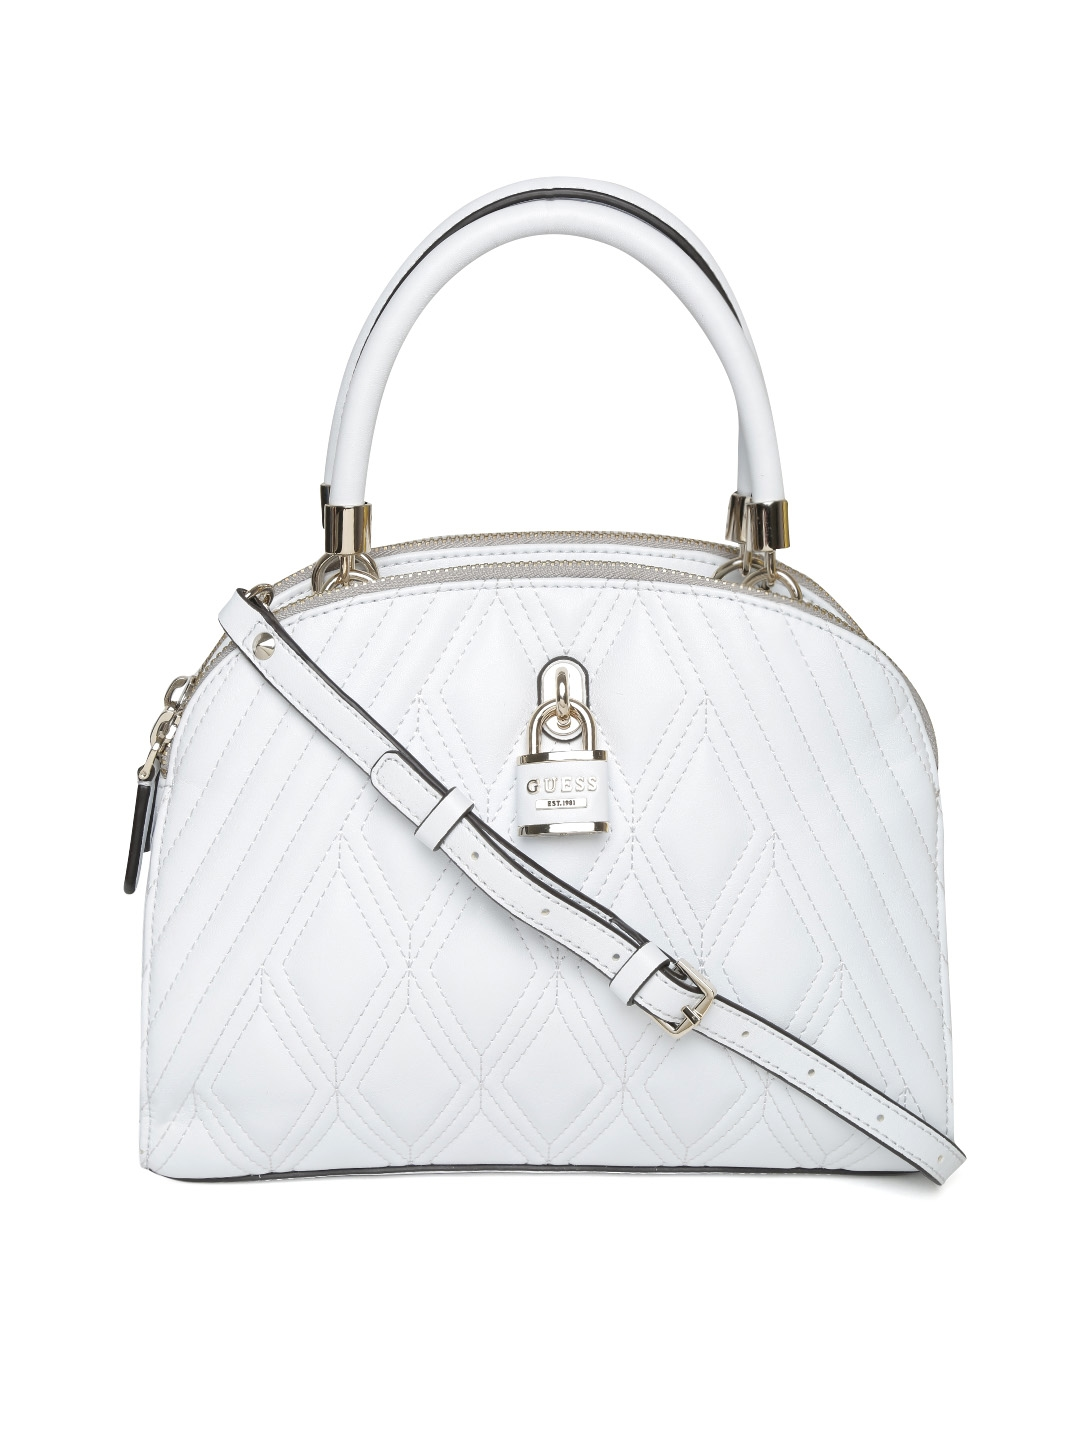 Buy GUESS White Quilted Handbag With Sling Strap Handbags for b863702b82b90